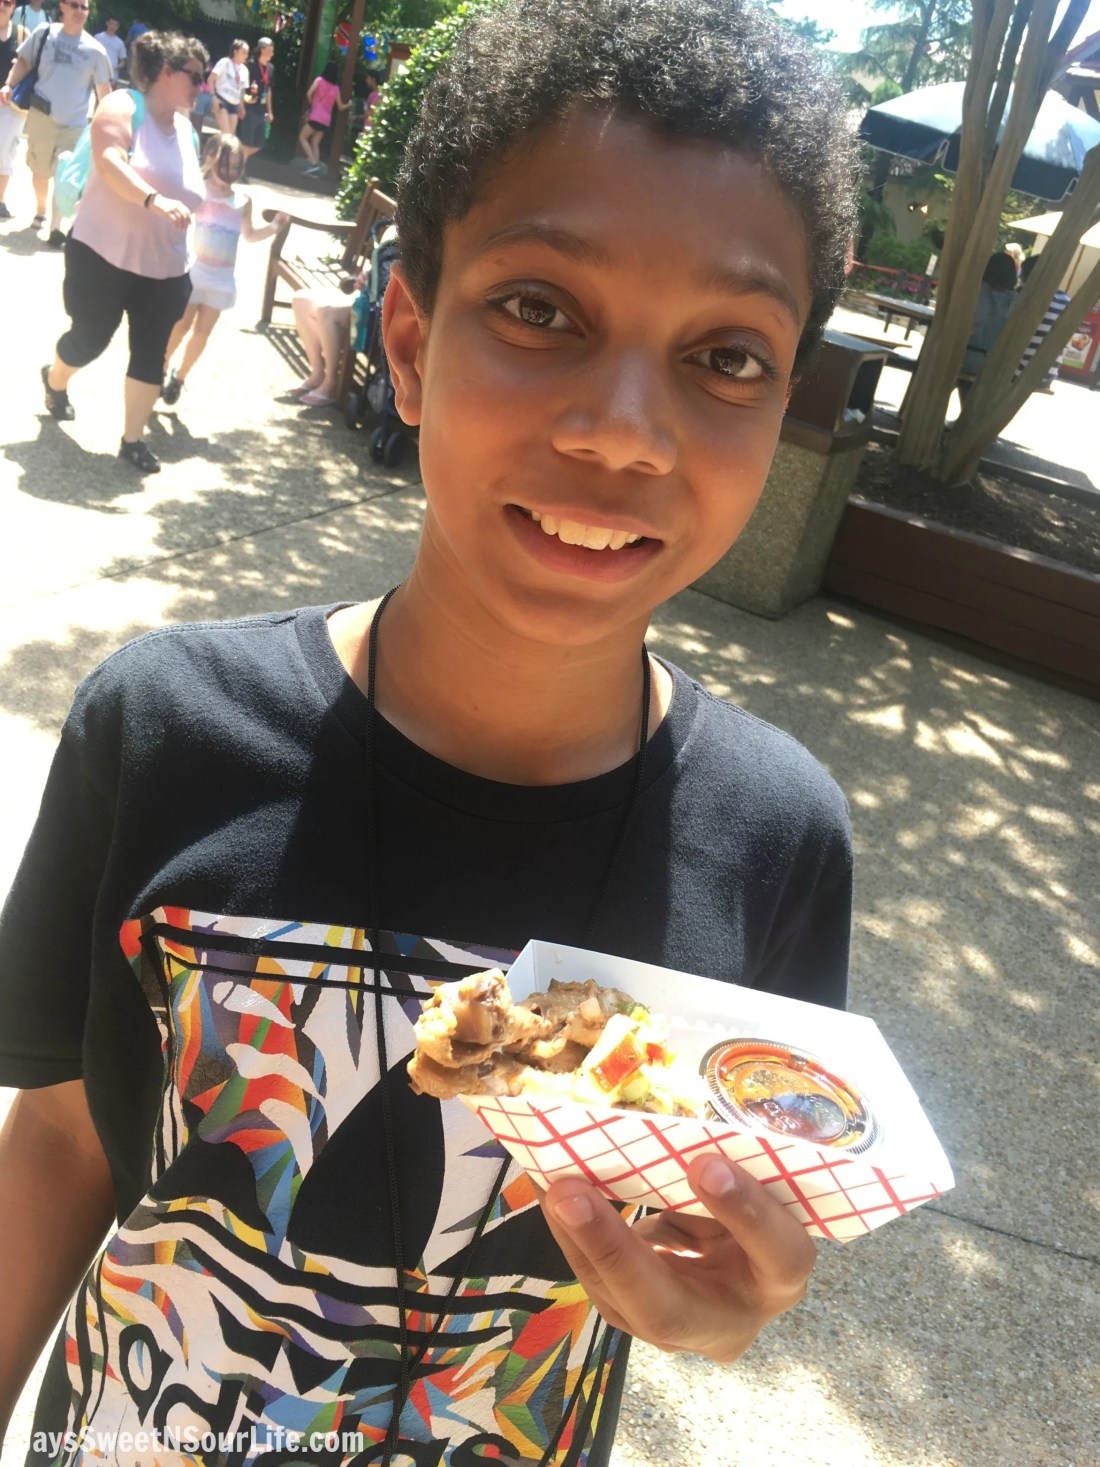 African American boy holding food at 2018 Busch Gardens Food and Wine Festival. Food & Wine Festival is from 11 am to close every Friday, Saturday and Sunday, May 25 - July 1.